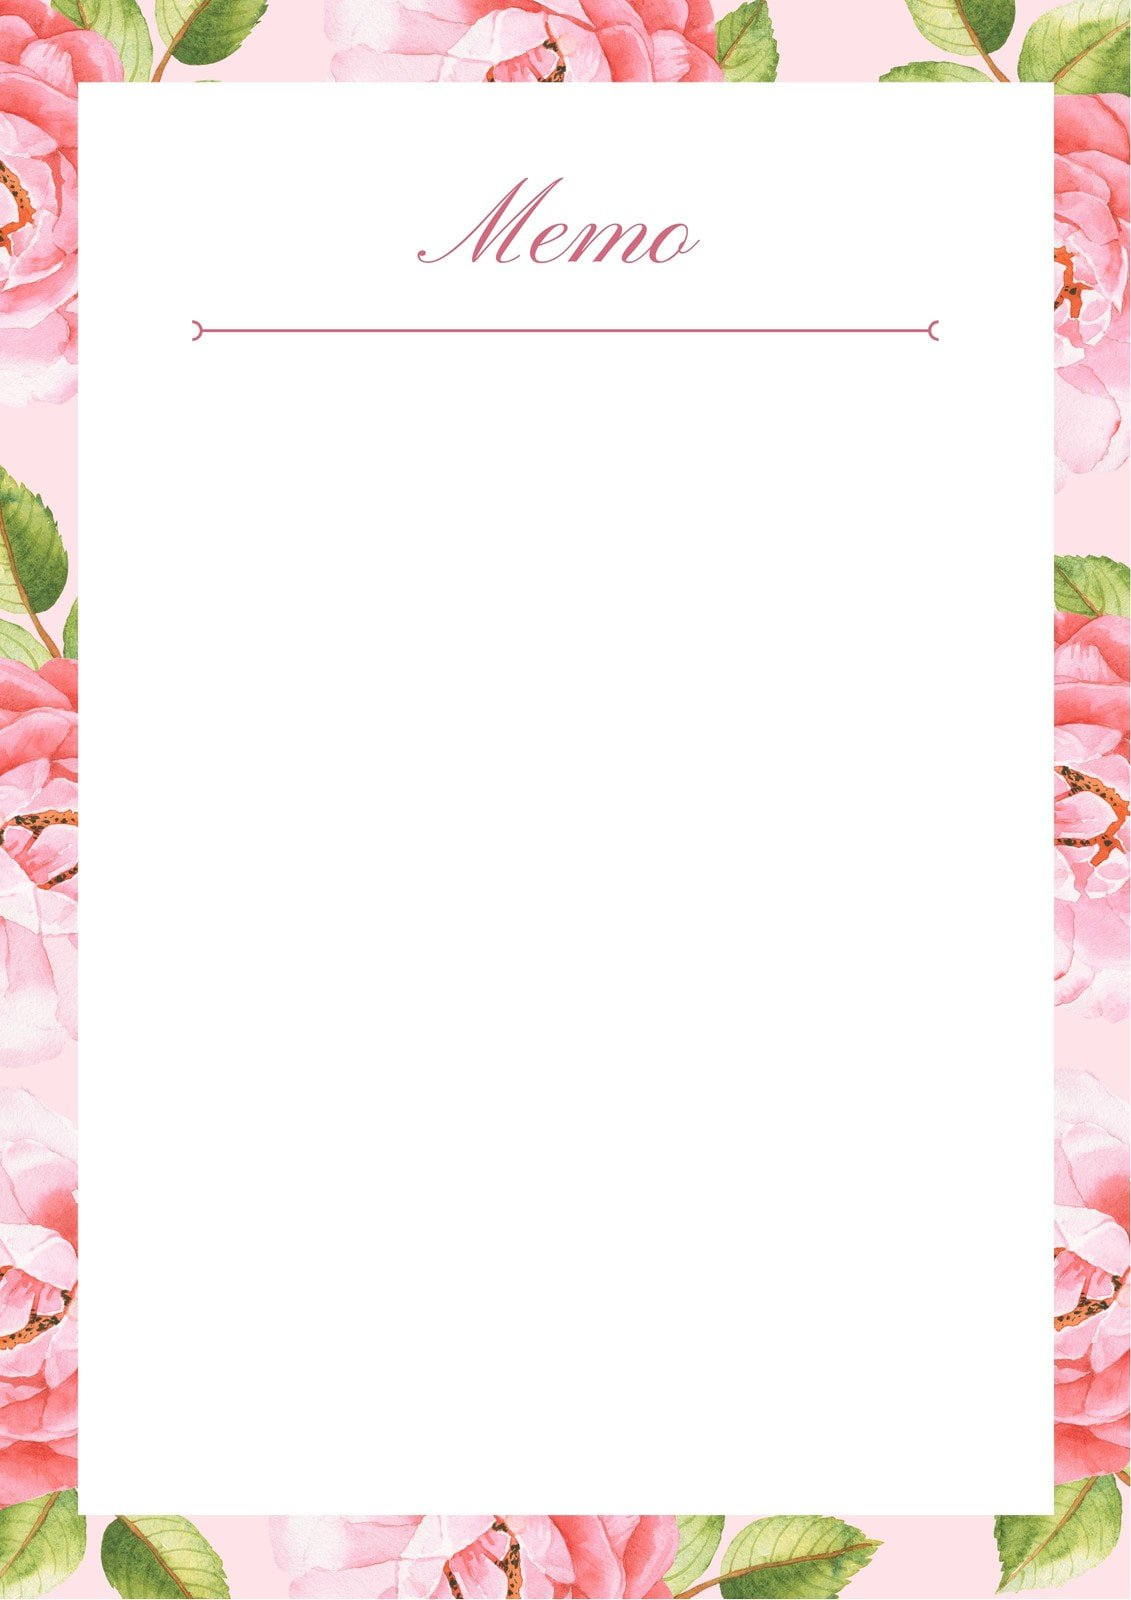 Pink and White Floral Watercolor Illustration Memo